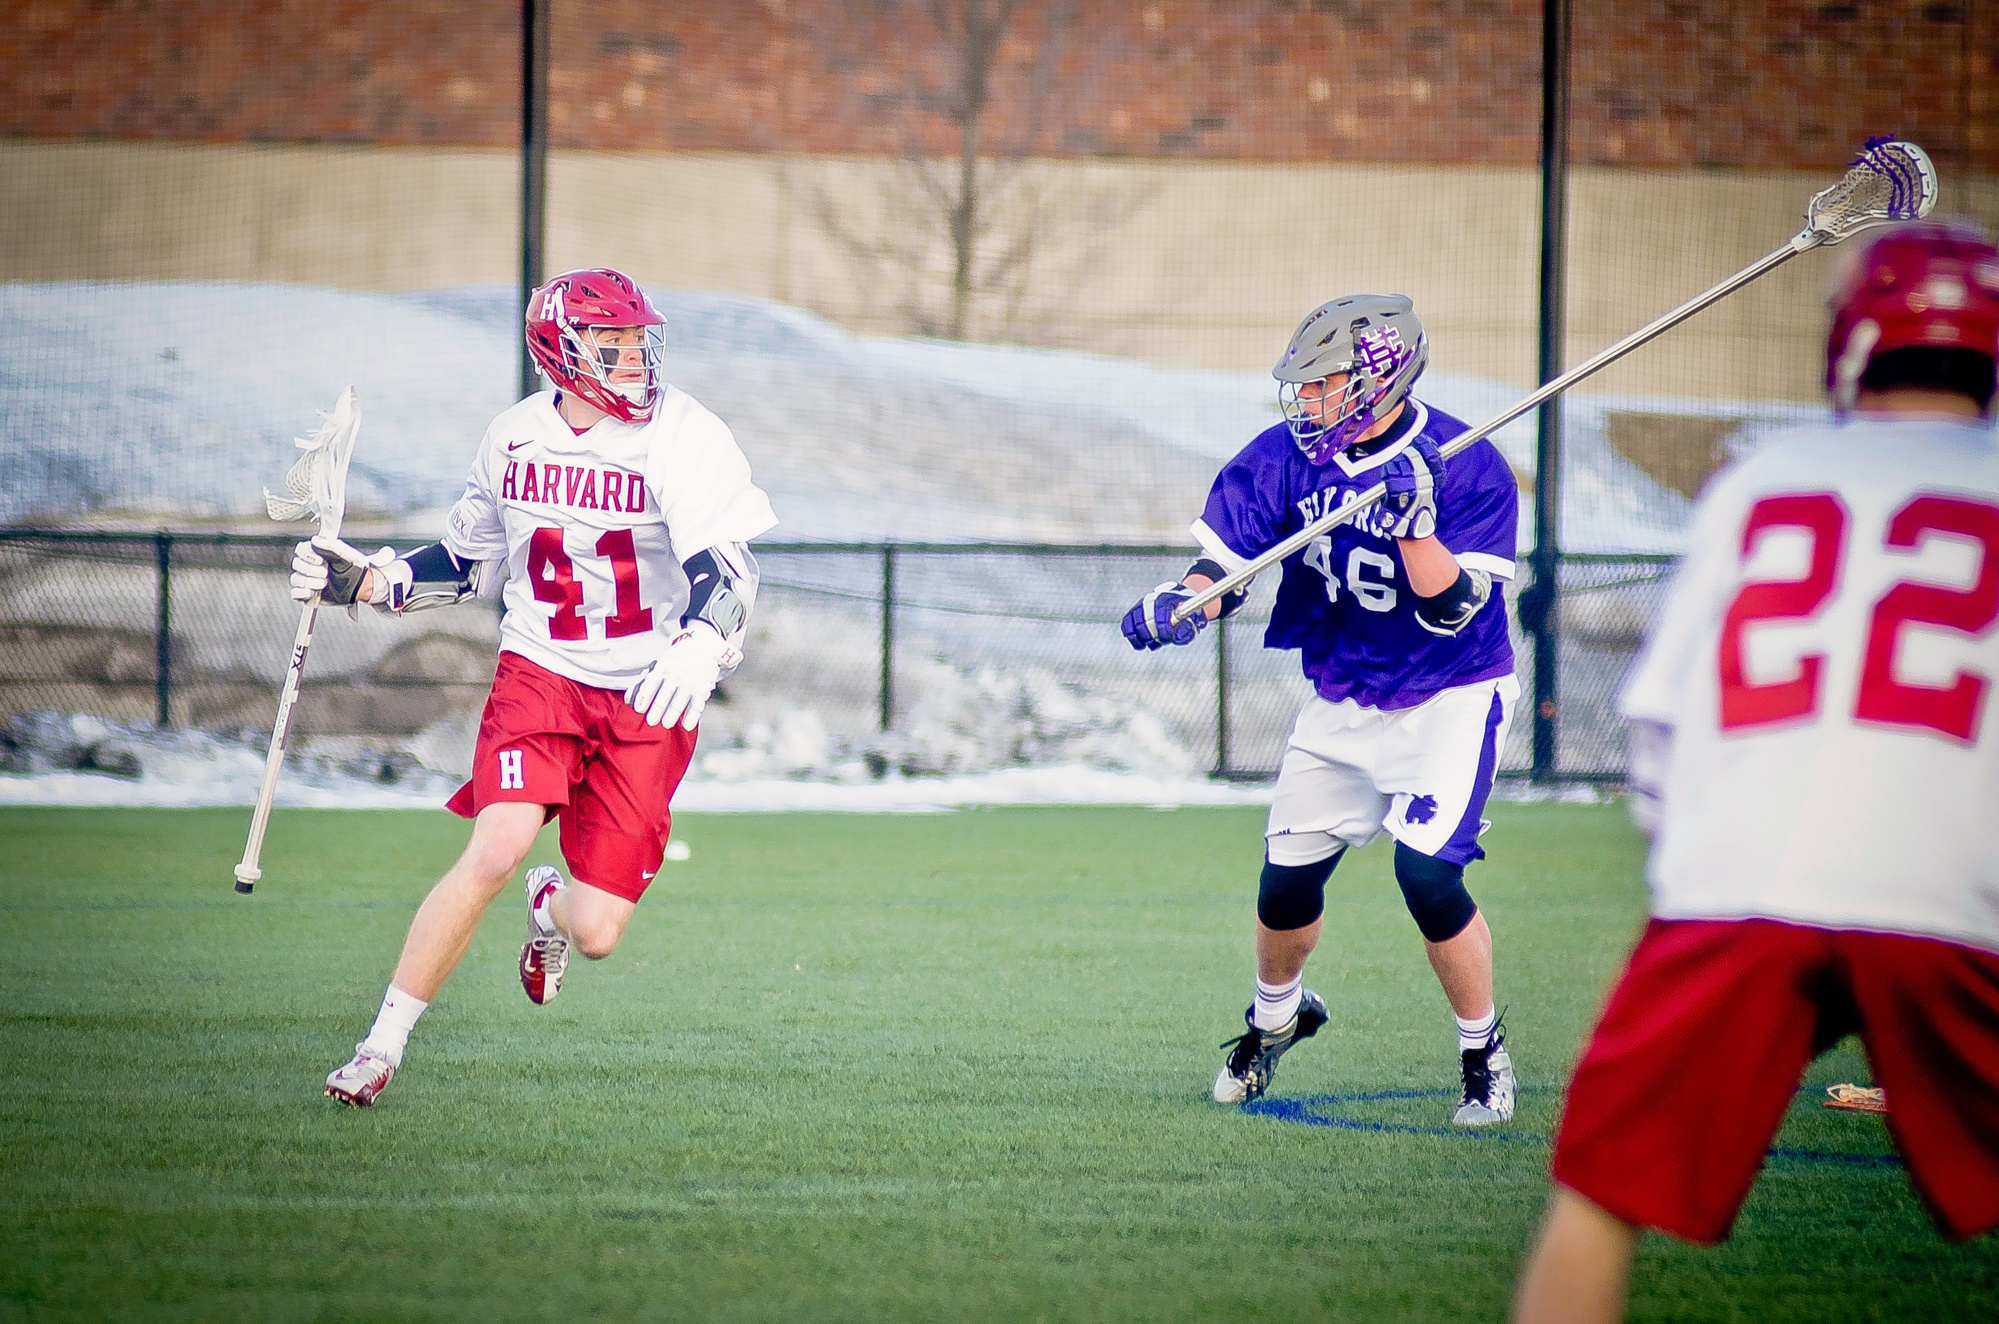 The men's lacrosse team, shown here in earlier action, closed out nonconference play with a win over BU, 14-9.